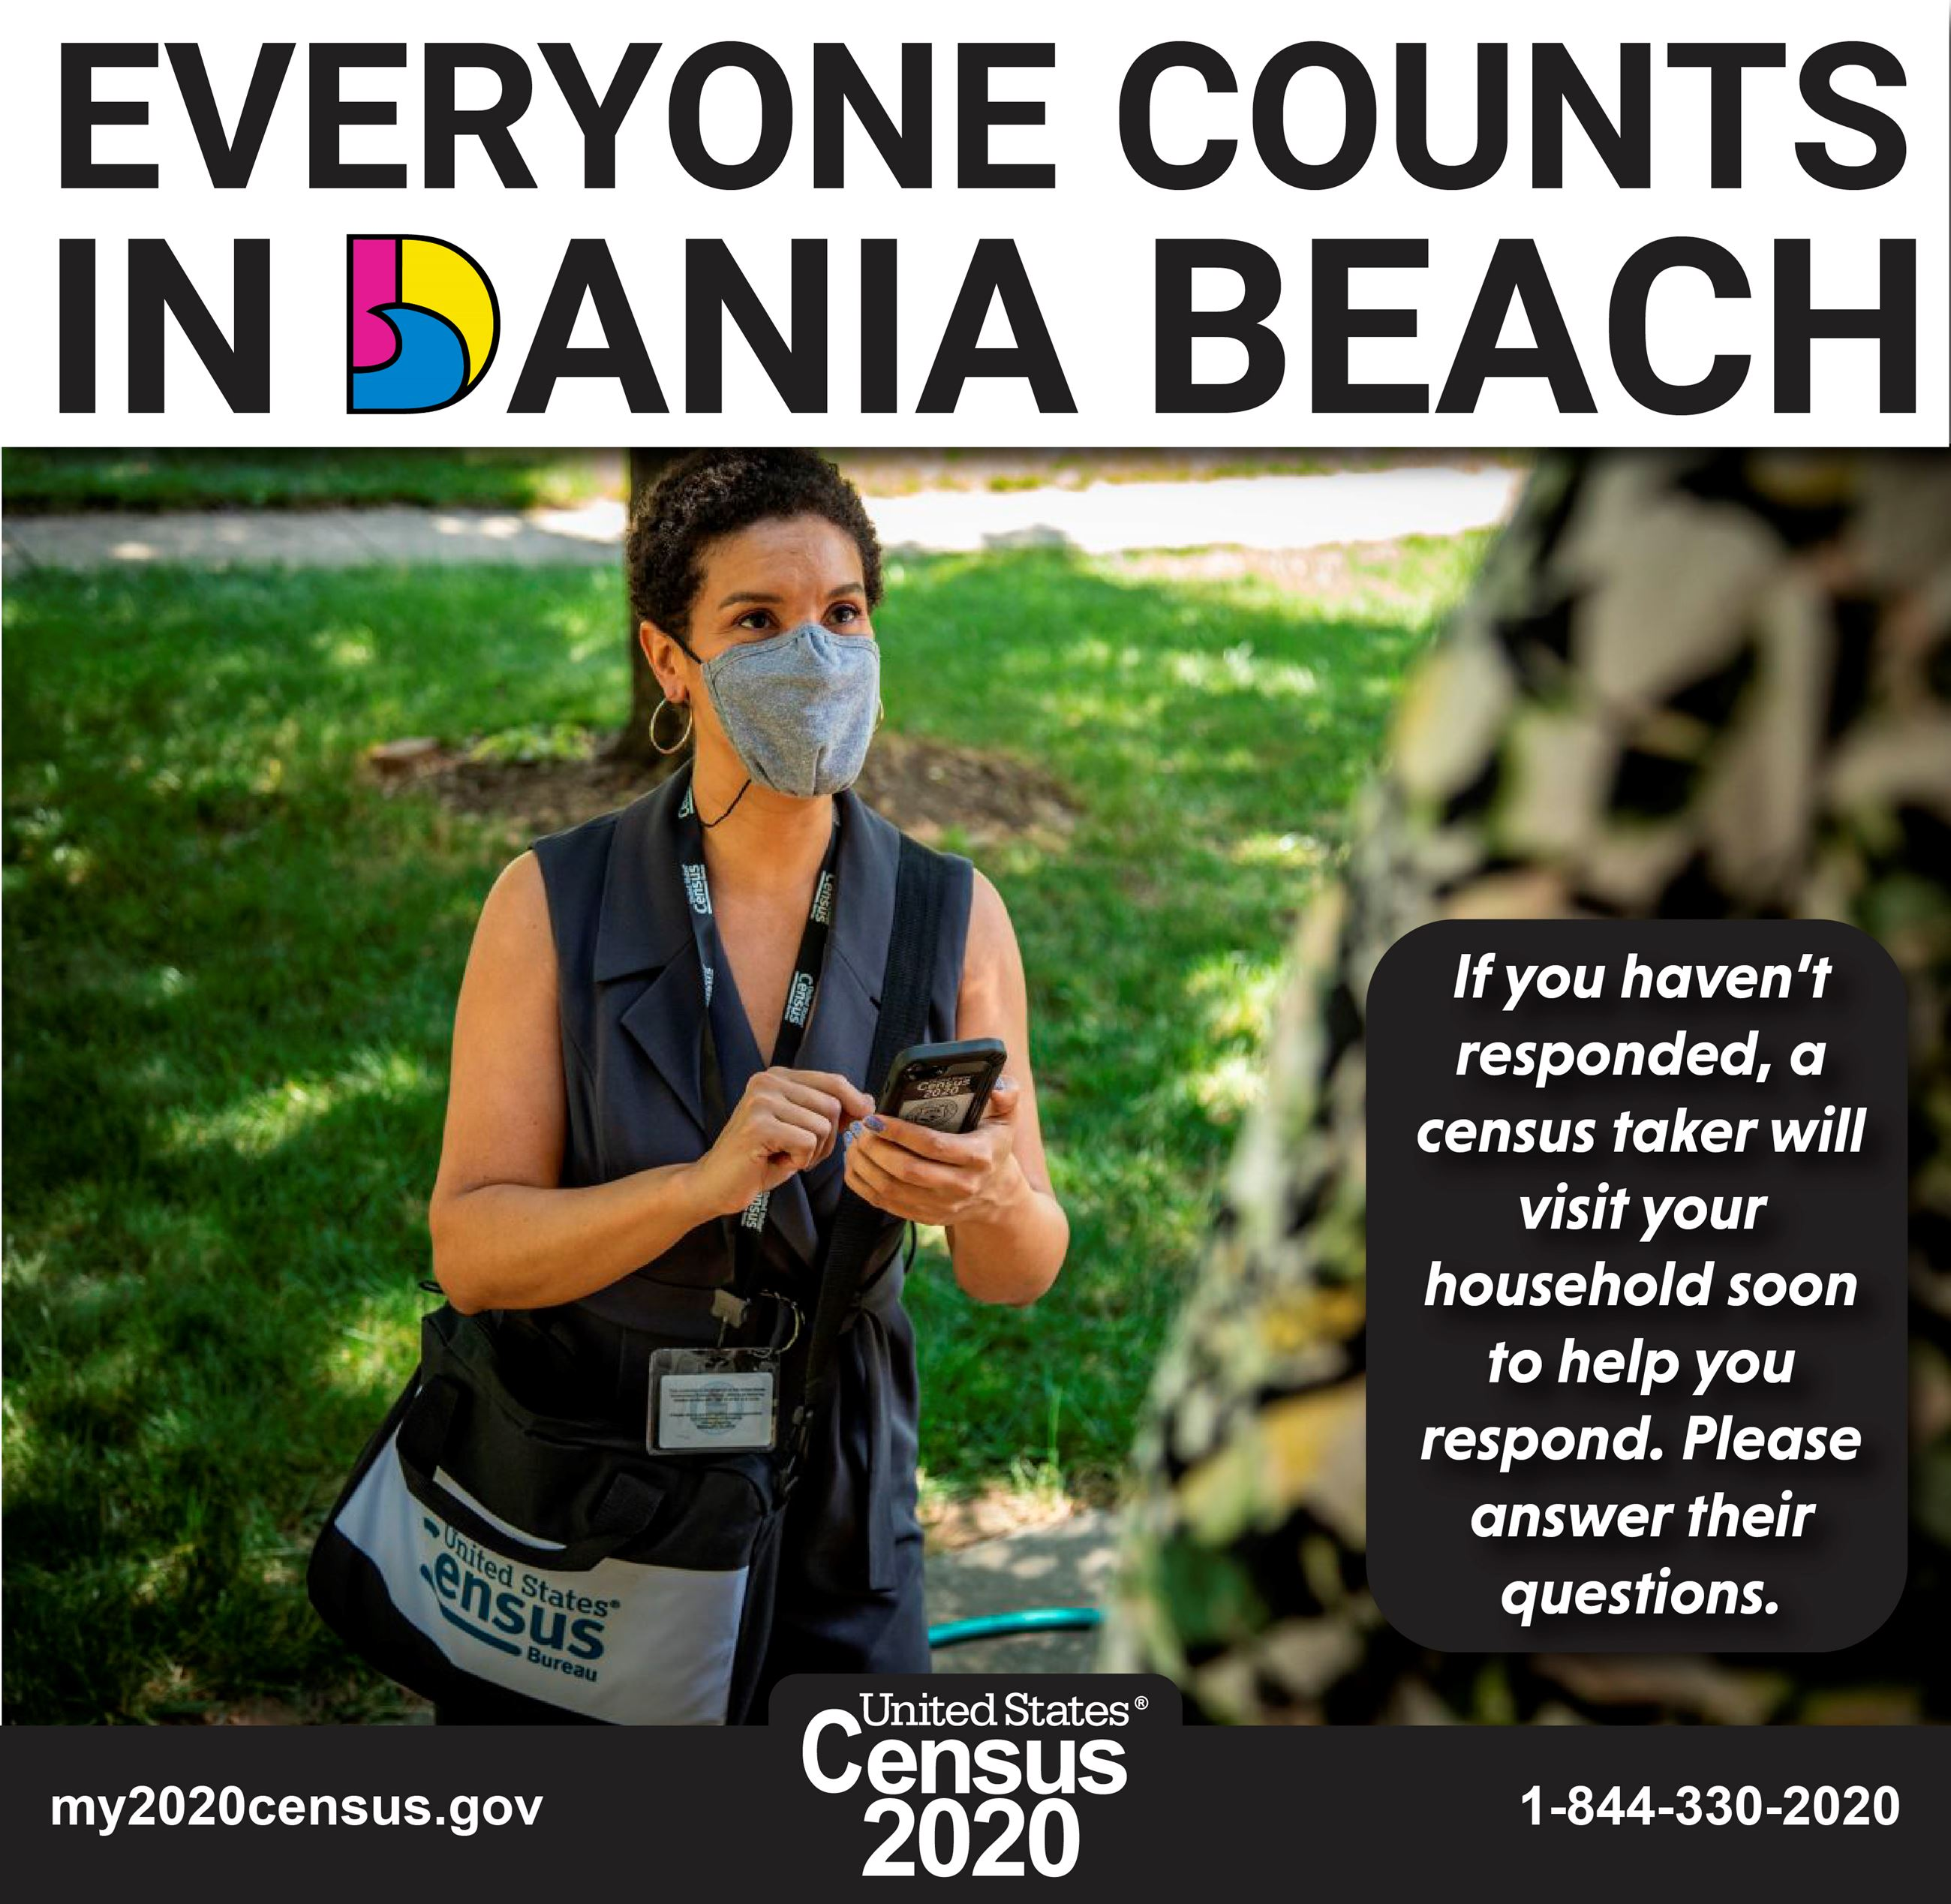 CENSUS TAKERS IN YOUR NEIGHBORHOOD - Dania Beach